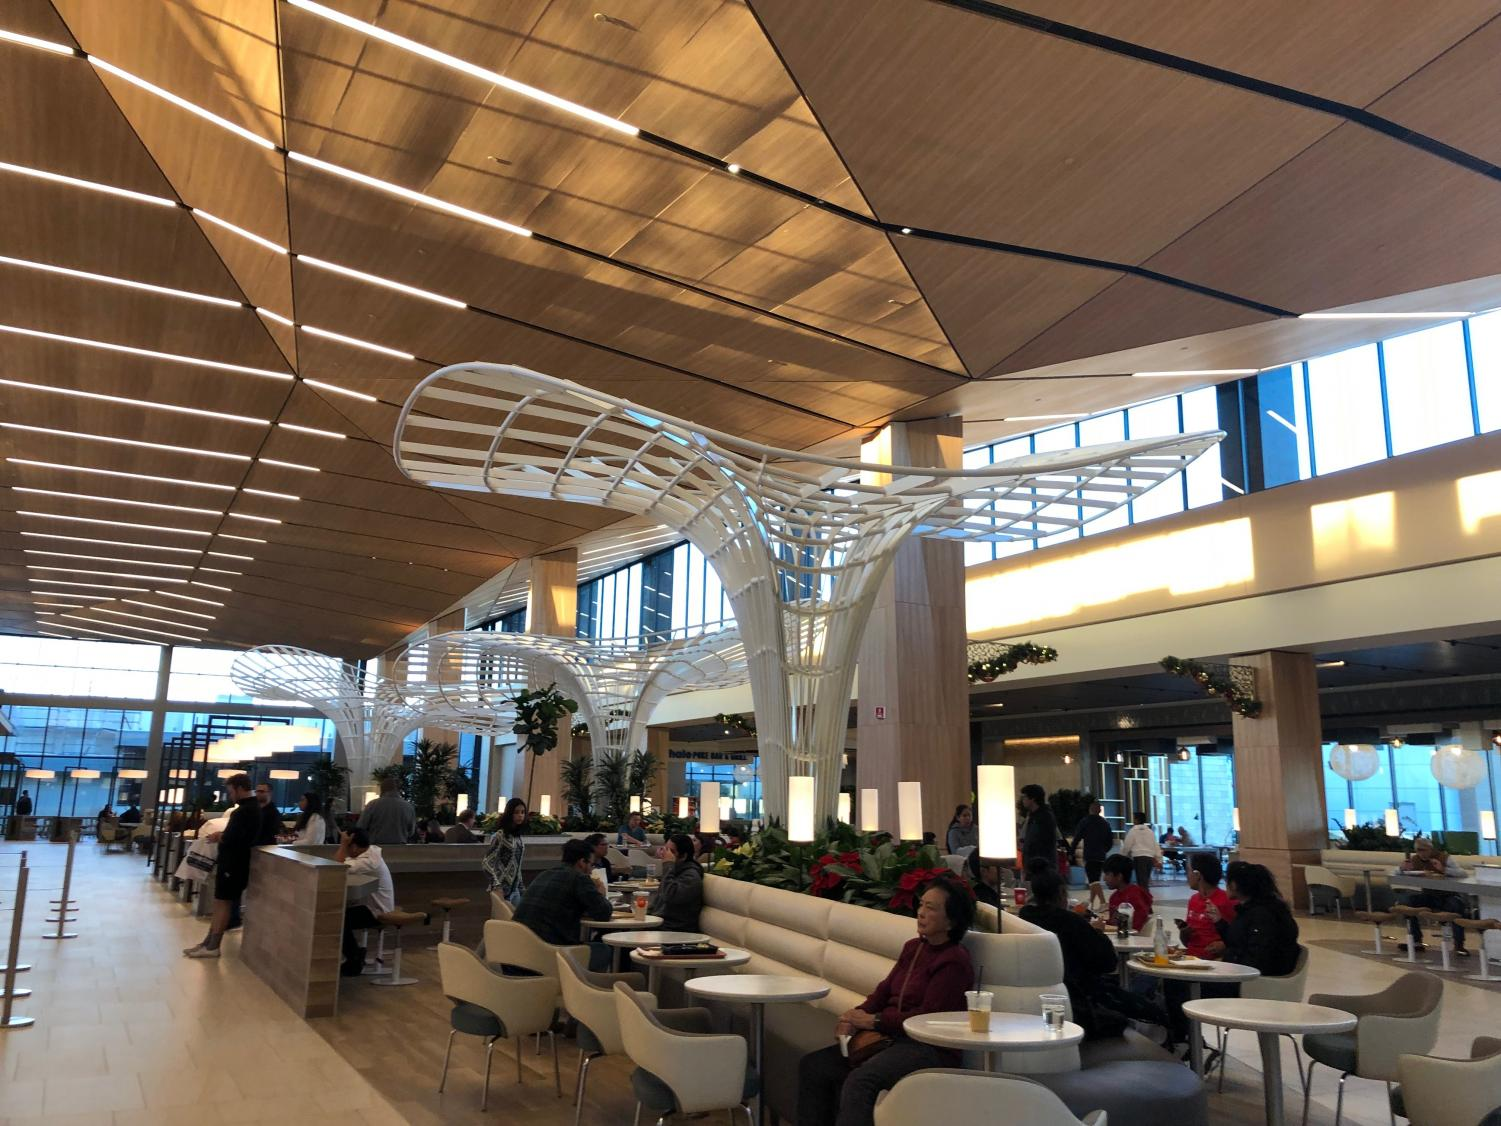 New Hillsdale Dining Terrace caters to San Mateo community